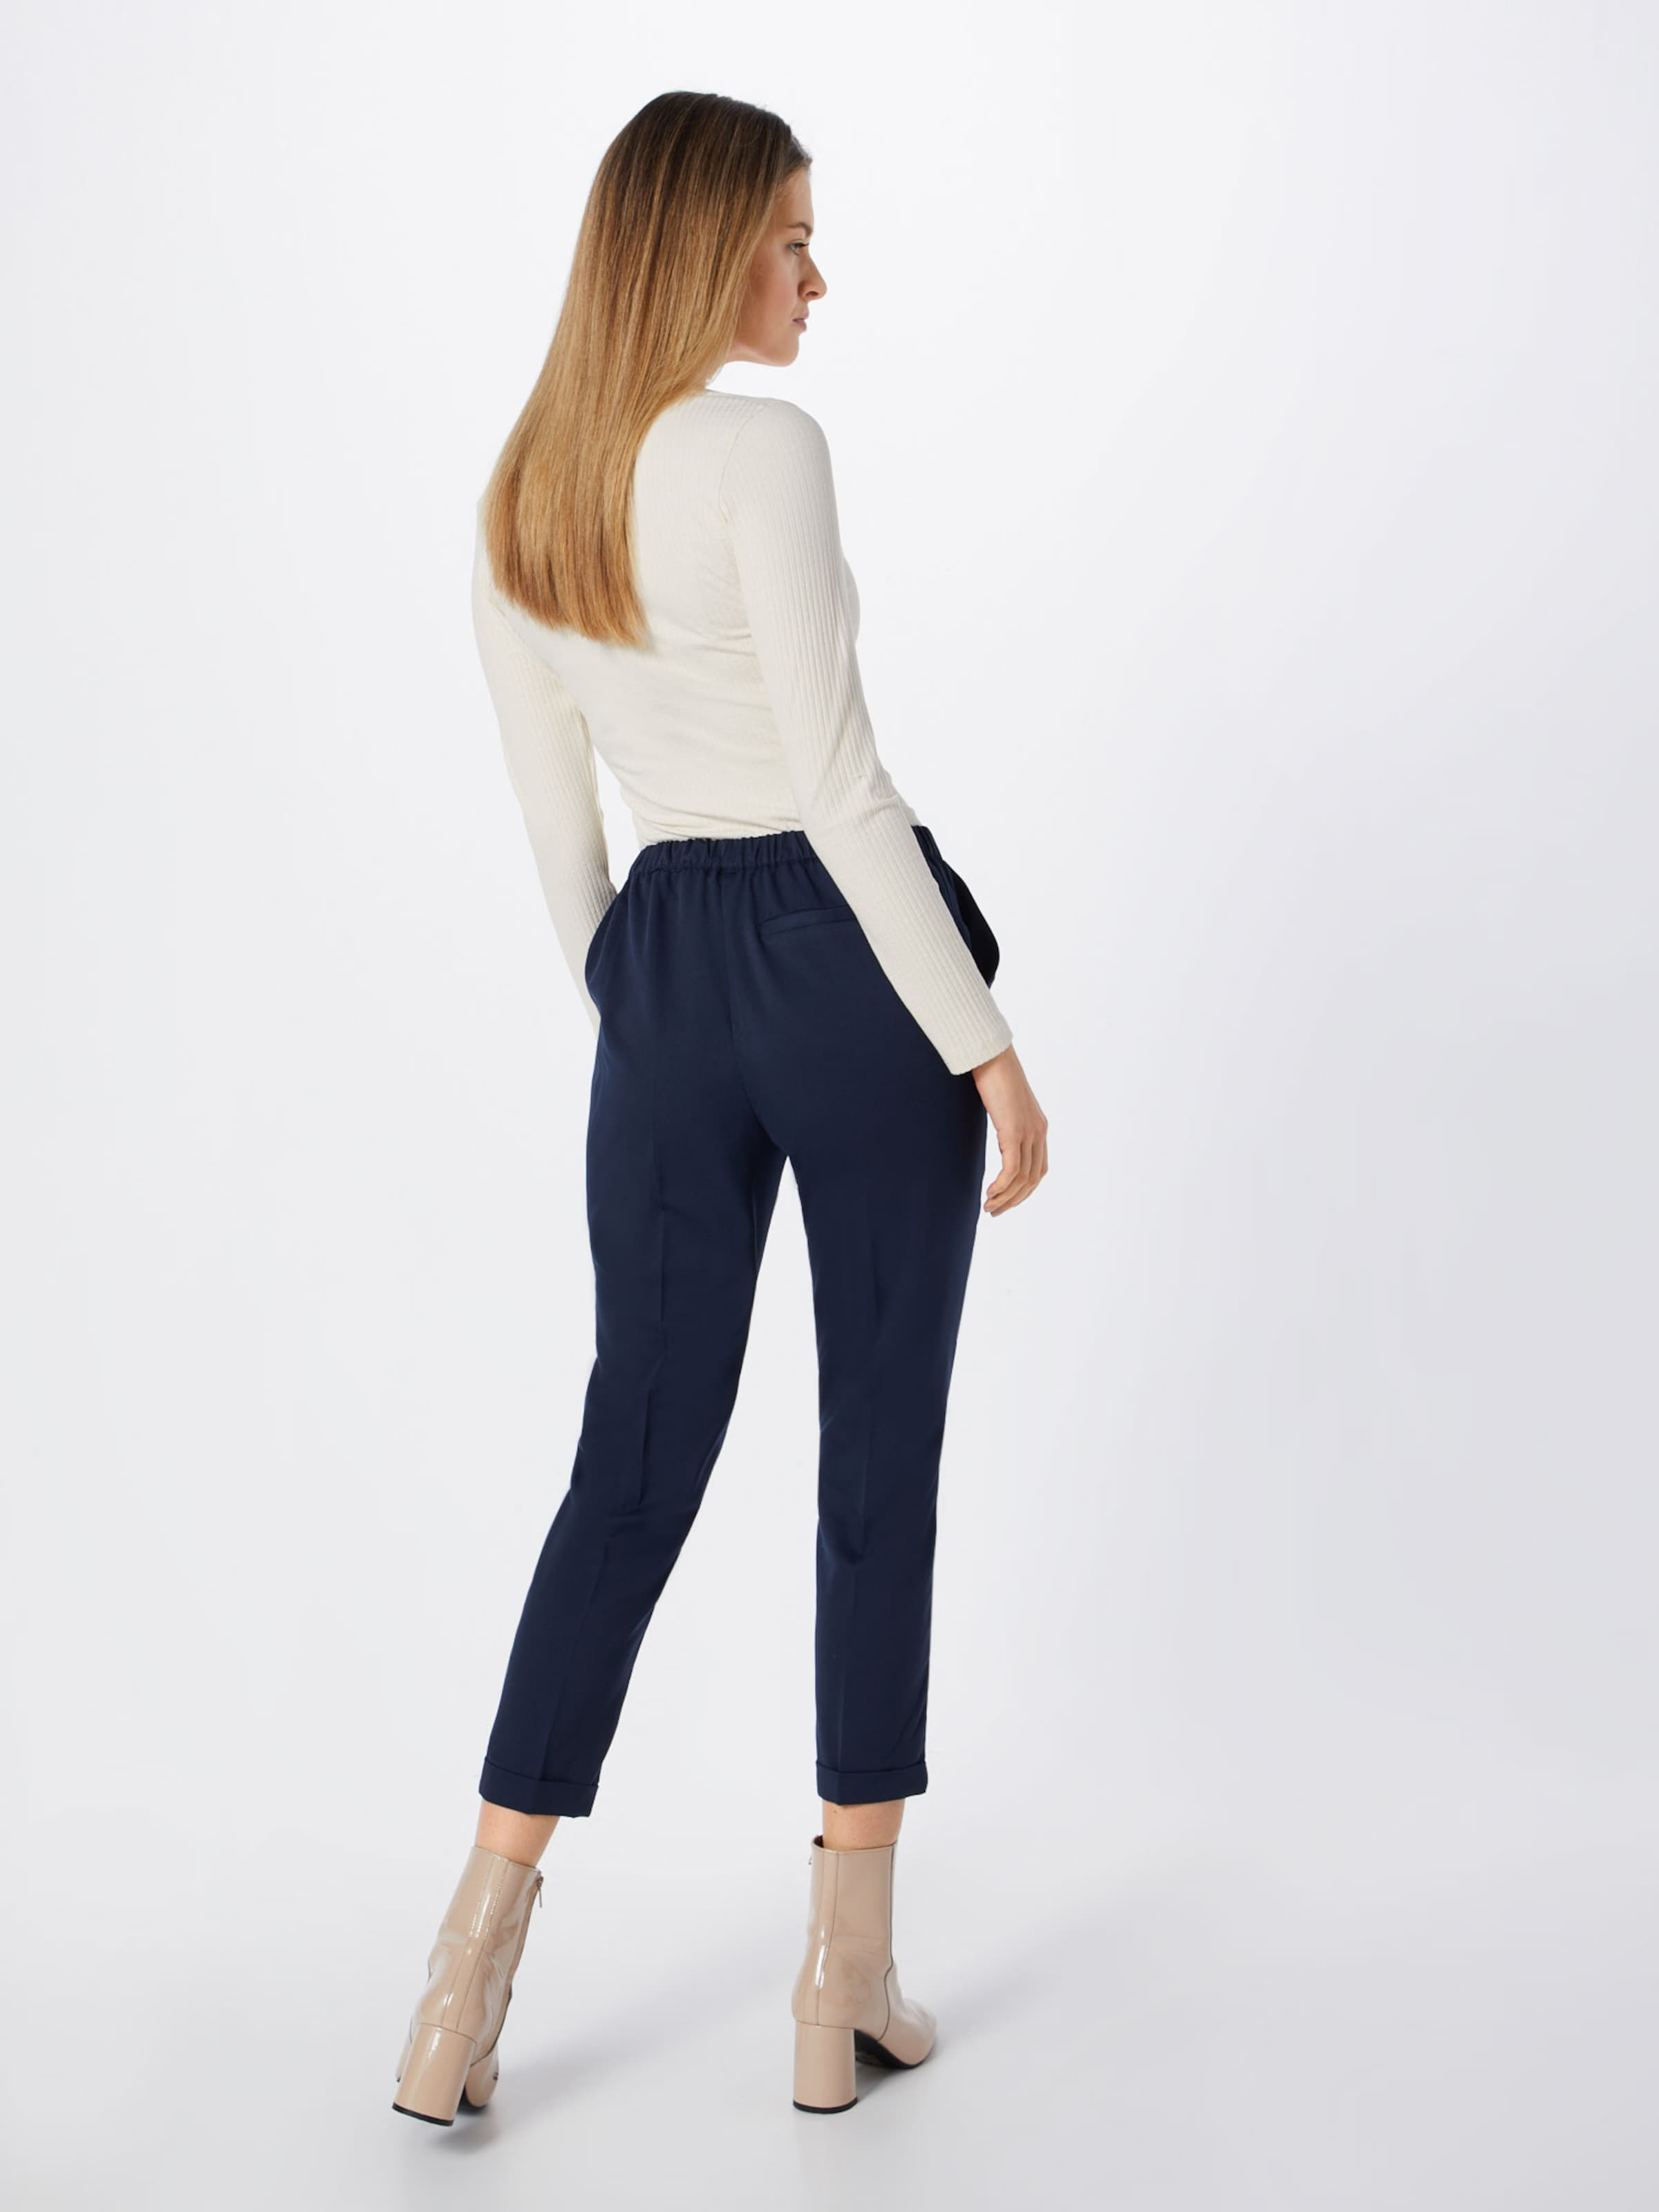 About Pantalon You Plis En 'louisa' Bleu À Foncé rhCsdtQx